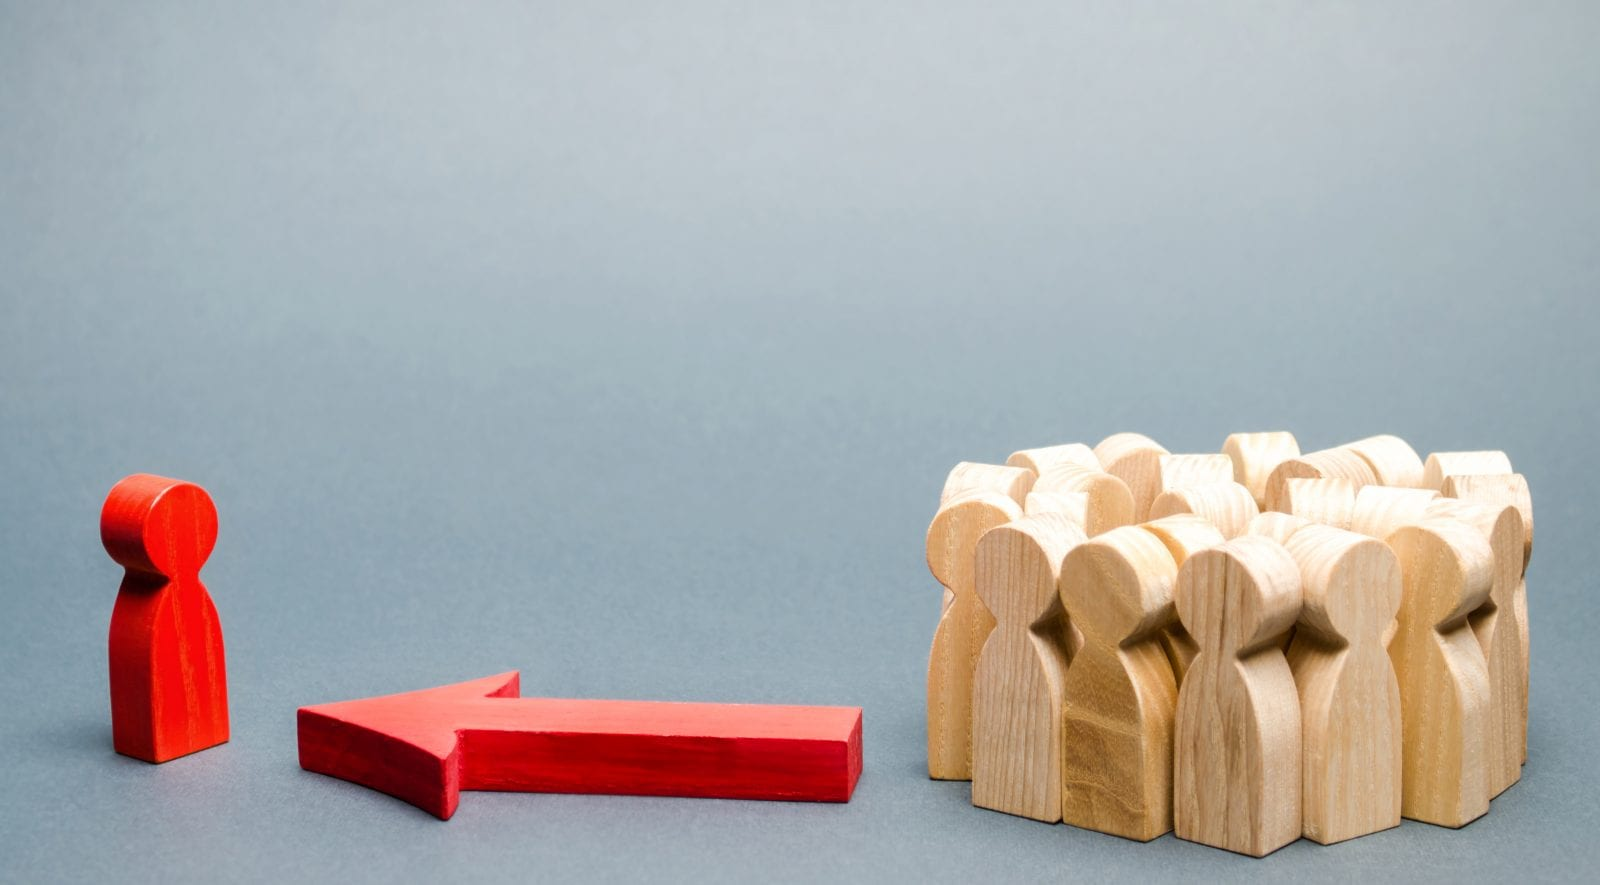 wooden peg people and arrow